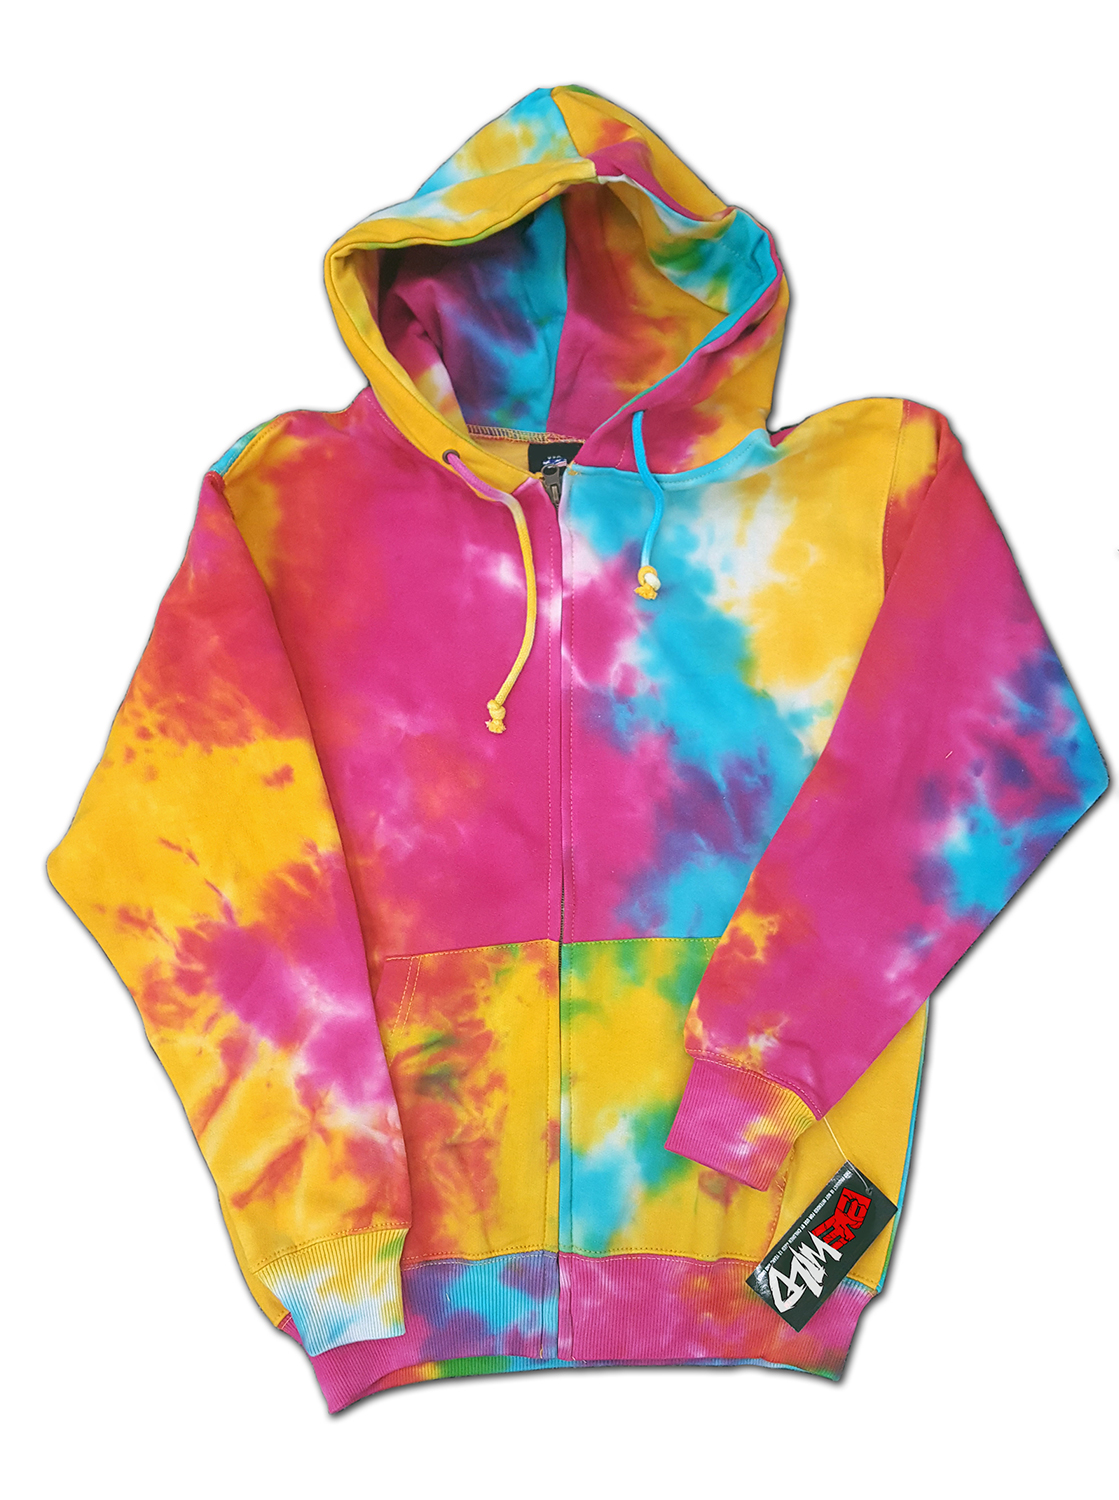 Remarkable, rather Adult tie dye sweatshirt right! think